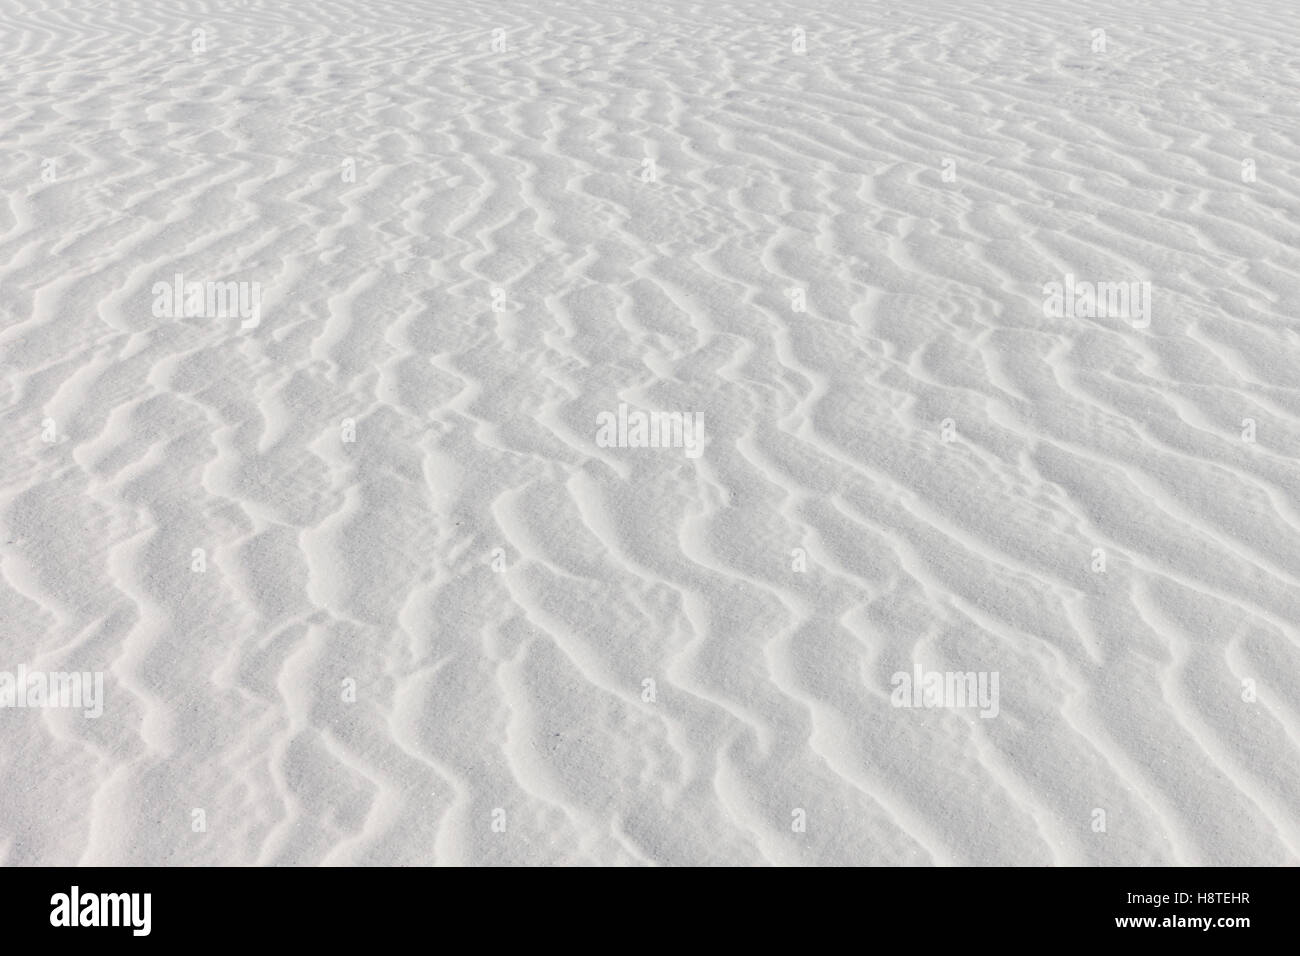 White Sands, New Mexico, USA. Patterns in the sand dunes - Stock Image